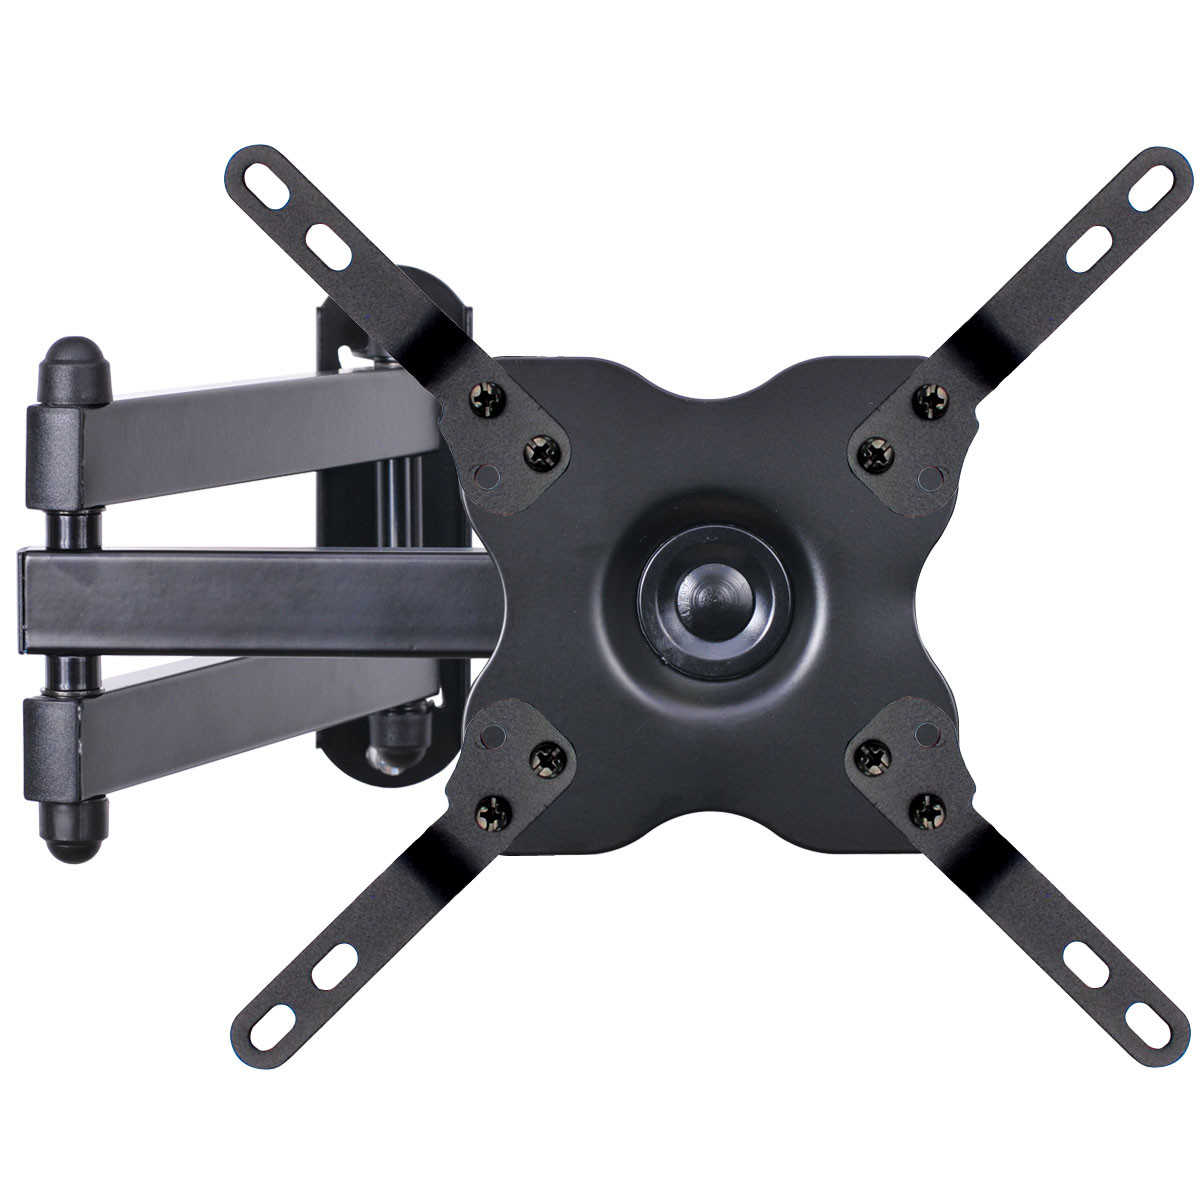 """VideoSecu Full Motion TV Wall Mount for VIZIO 24 28 32 39"""" E32-D1 E32h-C1 D39h-D0 D39hn-E0 LED LCD Articulating Tilt WS2"""